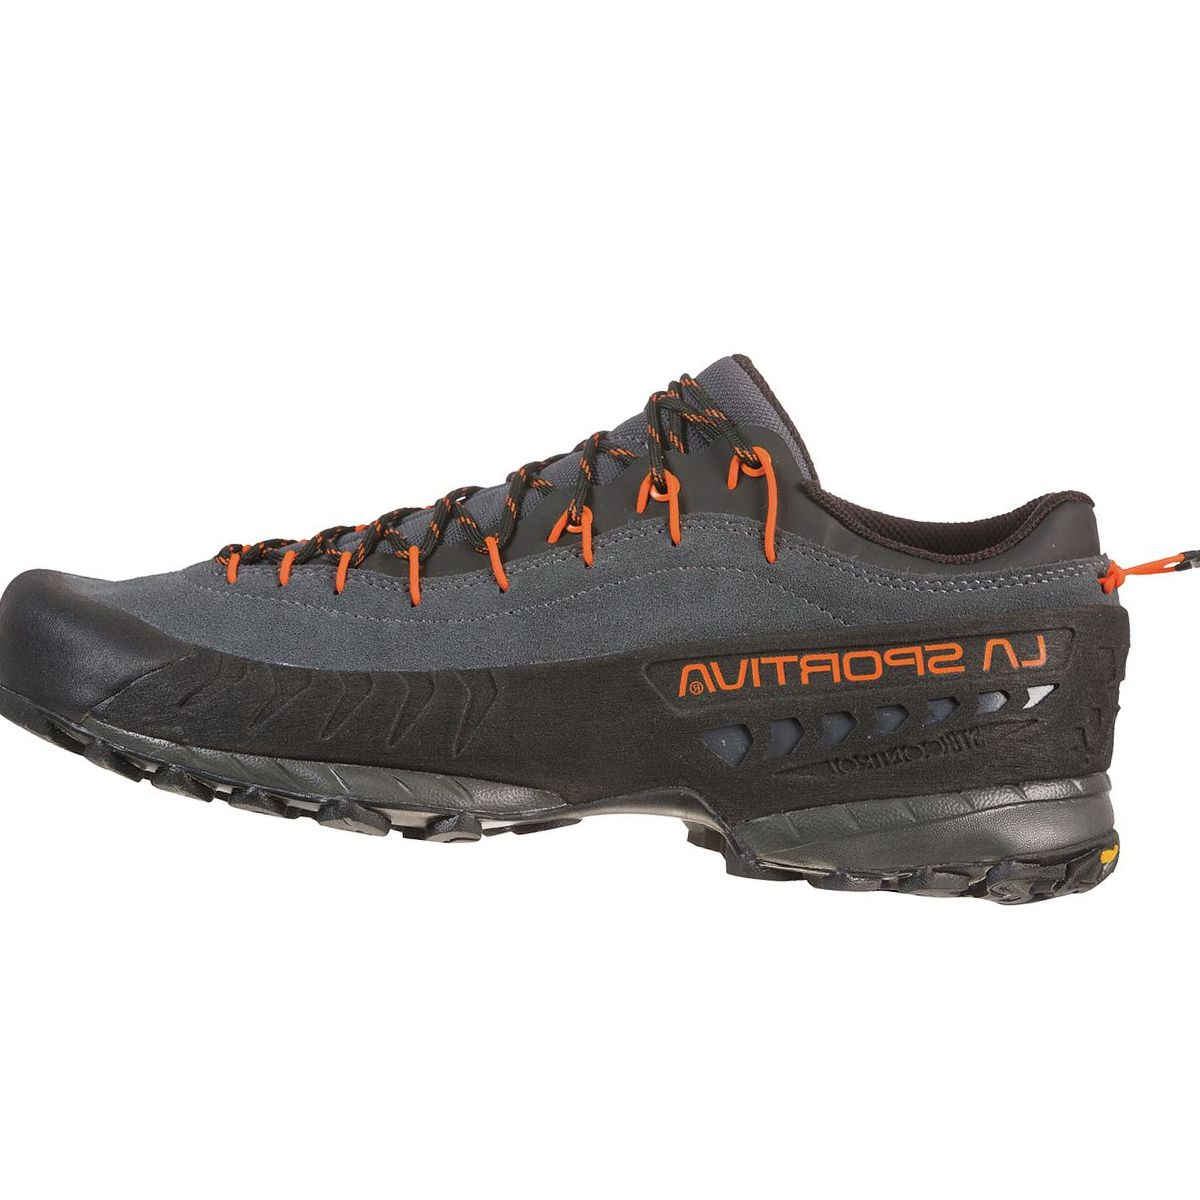 La Sportiva TX4 Approach Shoe - Men's